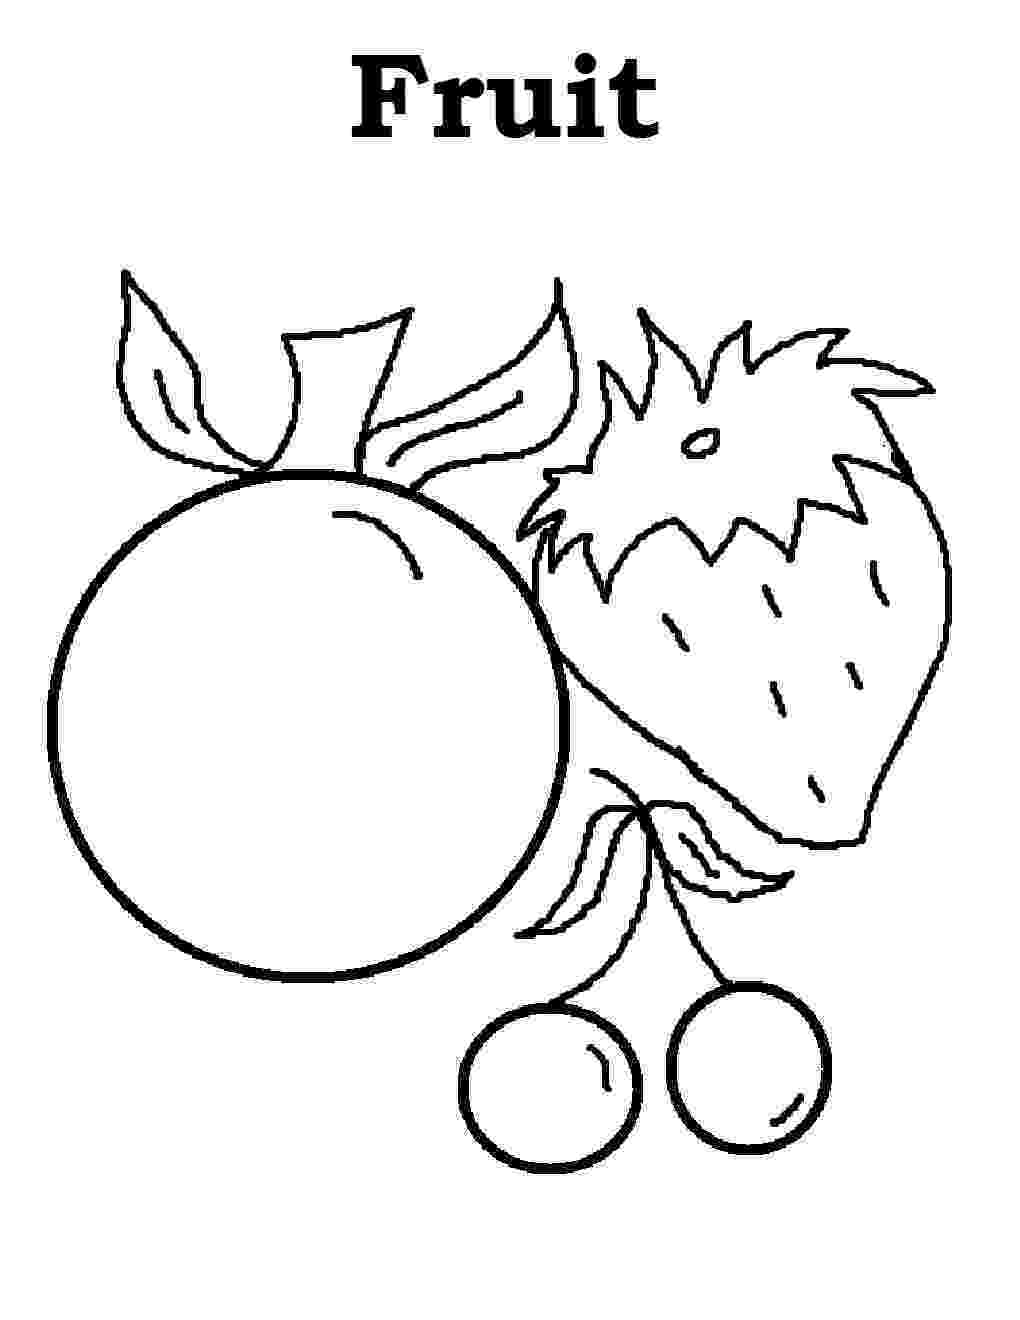 picture of fruits for colouring free printable fruit coloring pages for kids of colouring fruits picture for